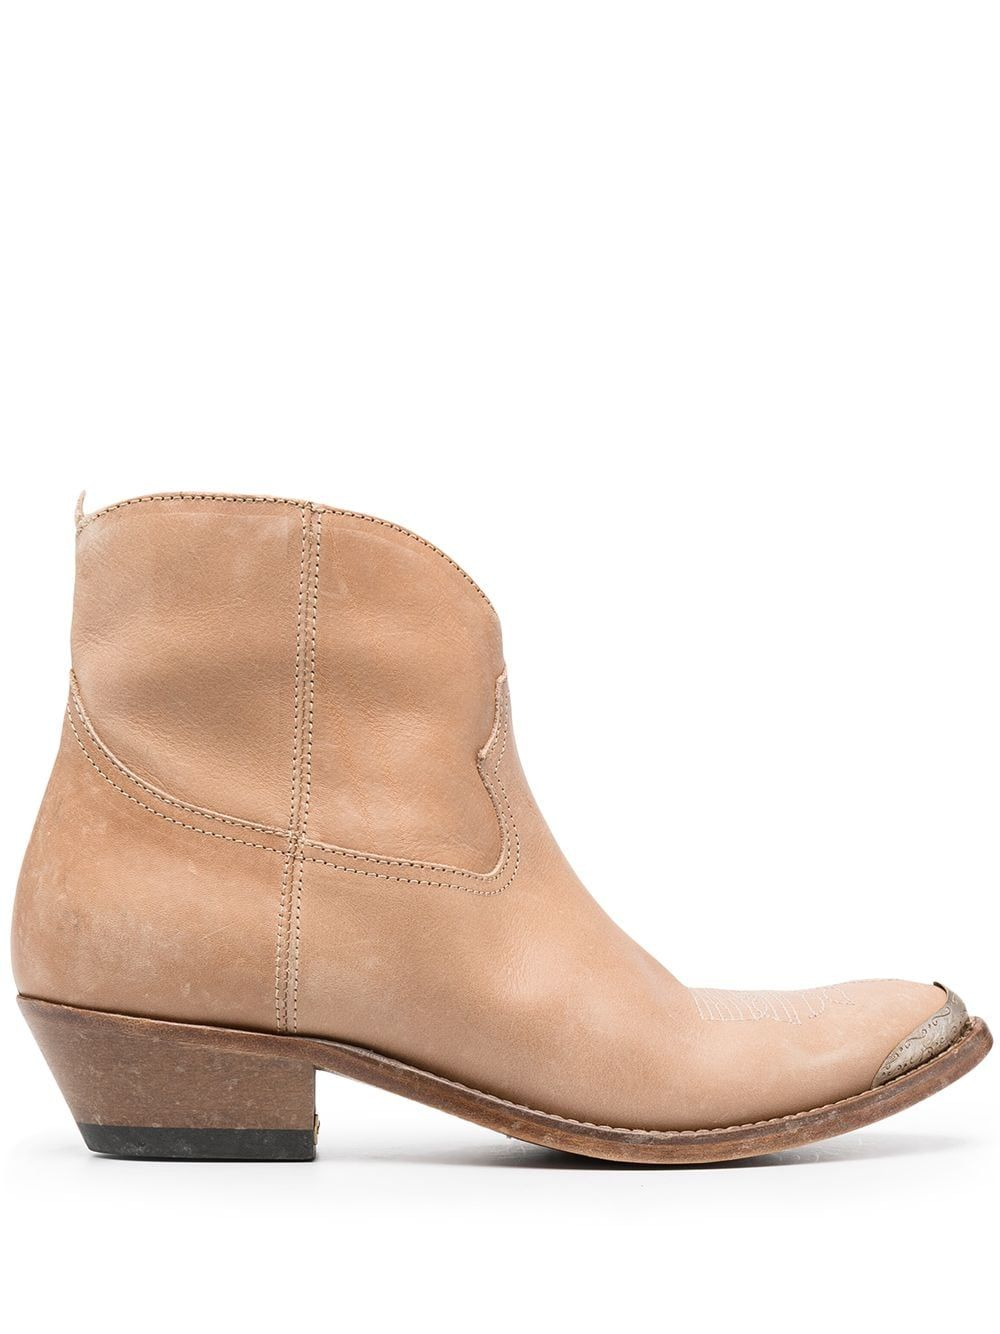 Golden Goose Leathers GOLDEN GOOSE WOMEN'S GWF00131F00088255398 BEIGE LEATHER ANKLE BOOTS